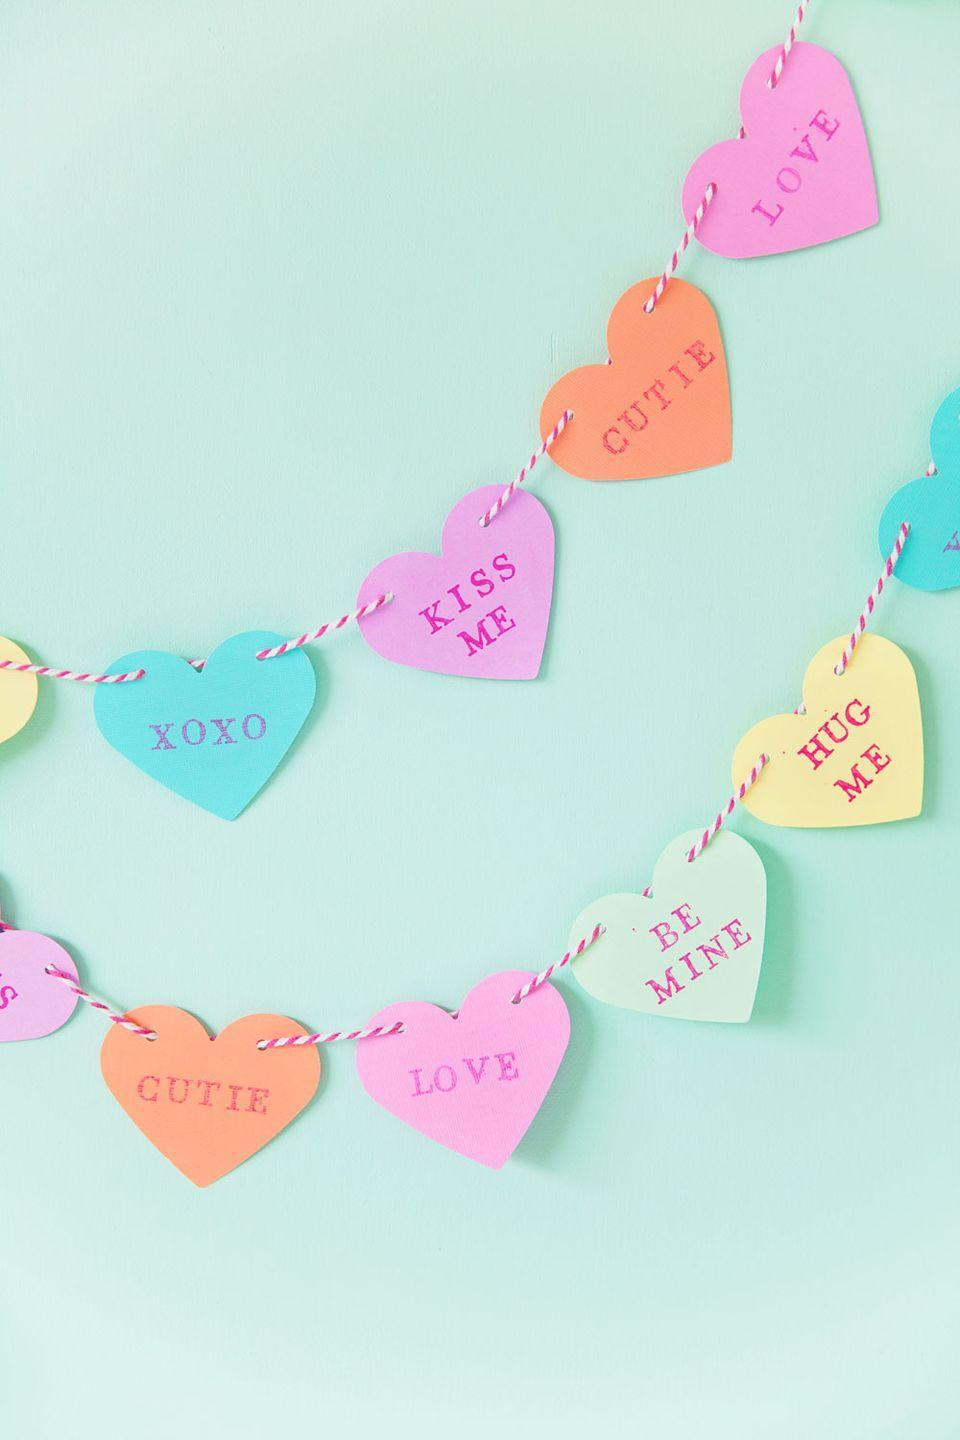 """<p>Want to really blow him away? Trade the typical sayings for inside jokes and sweet nothings that only he'd understand. </p><p><em><a href=""""https://tellloveandparty.com/2017/01/diy-candy-heart-garland.html"""" rel=""""nofollow noopener"""" target=""""_blank"""" data-ylk=""""slk:Get the tutorial at Tell Love and Party »"""" class=""""link rapid-noclick-resp"""">Get the tutorial at Tell Love and Party »</a></em></p>"""